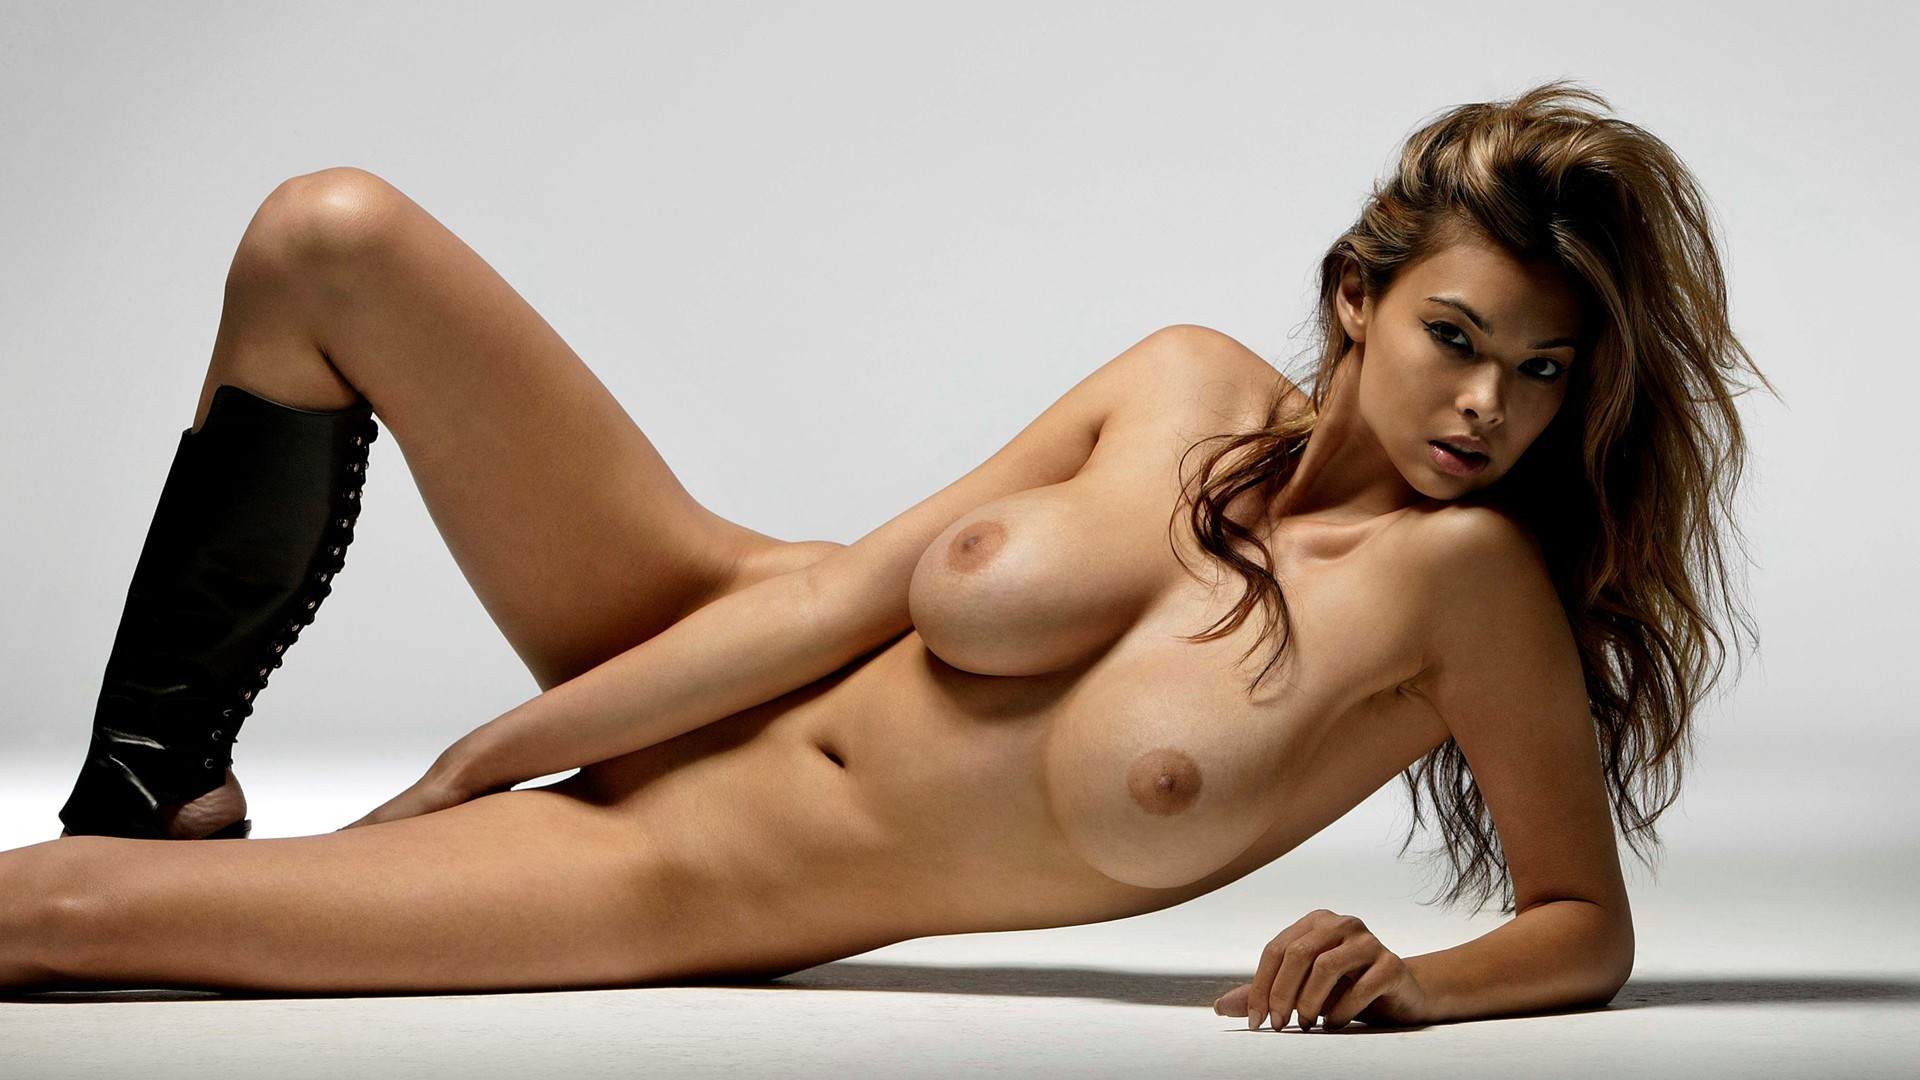 Half nude pretty women